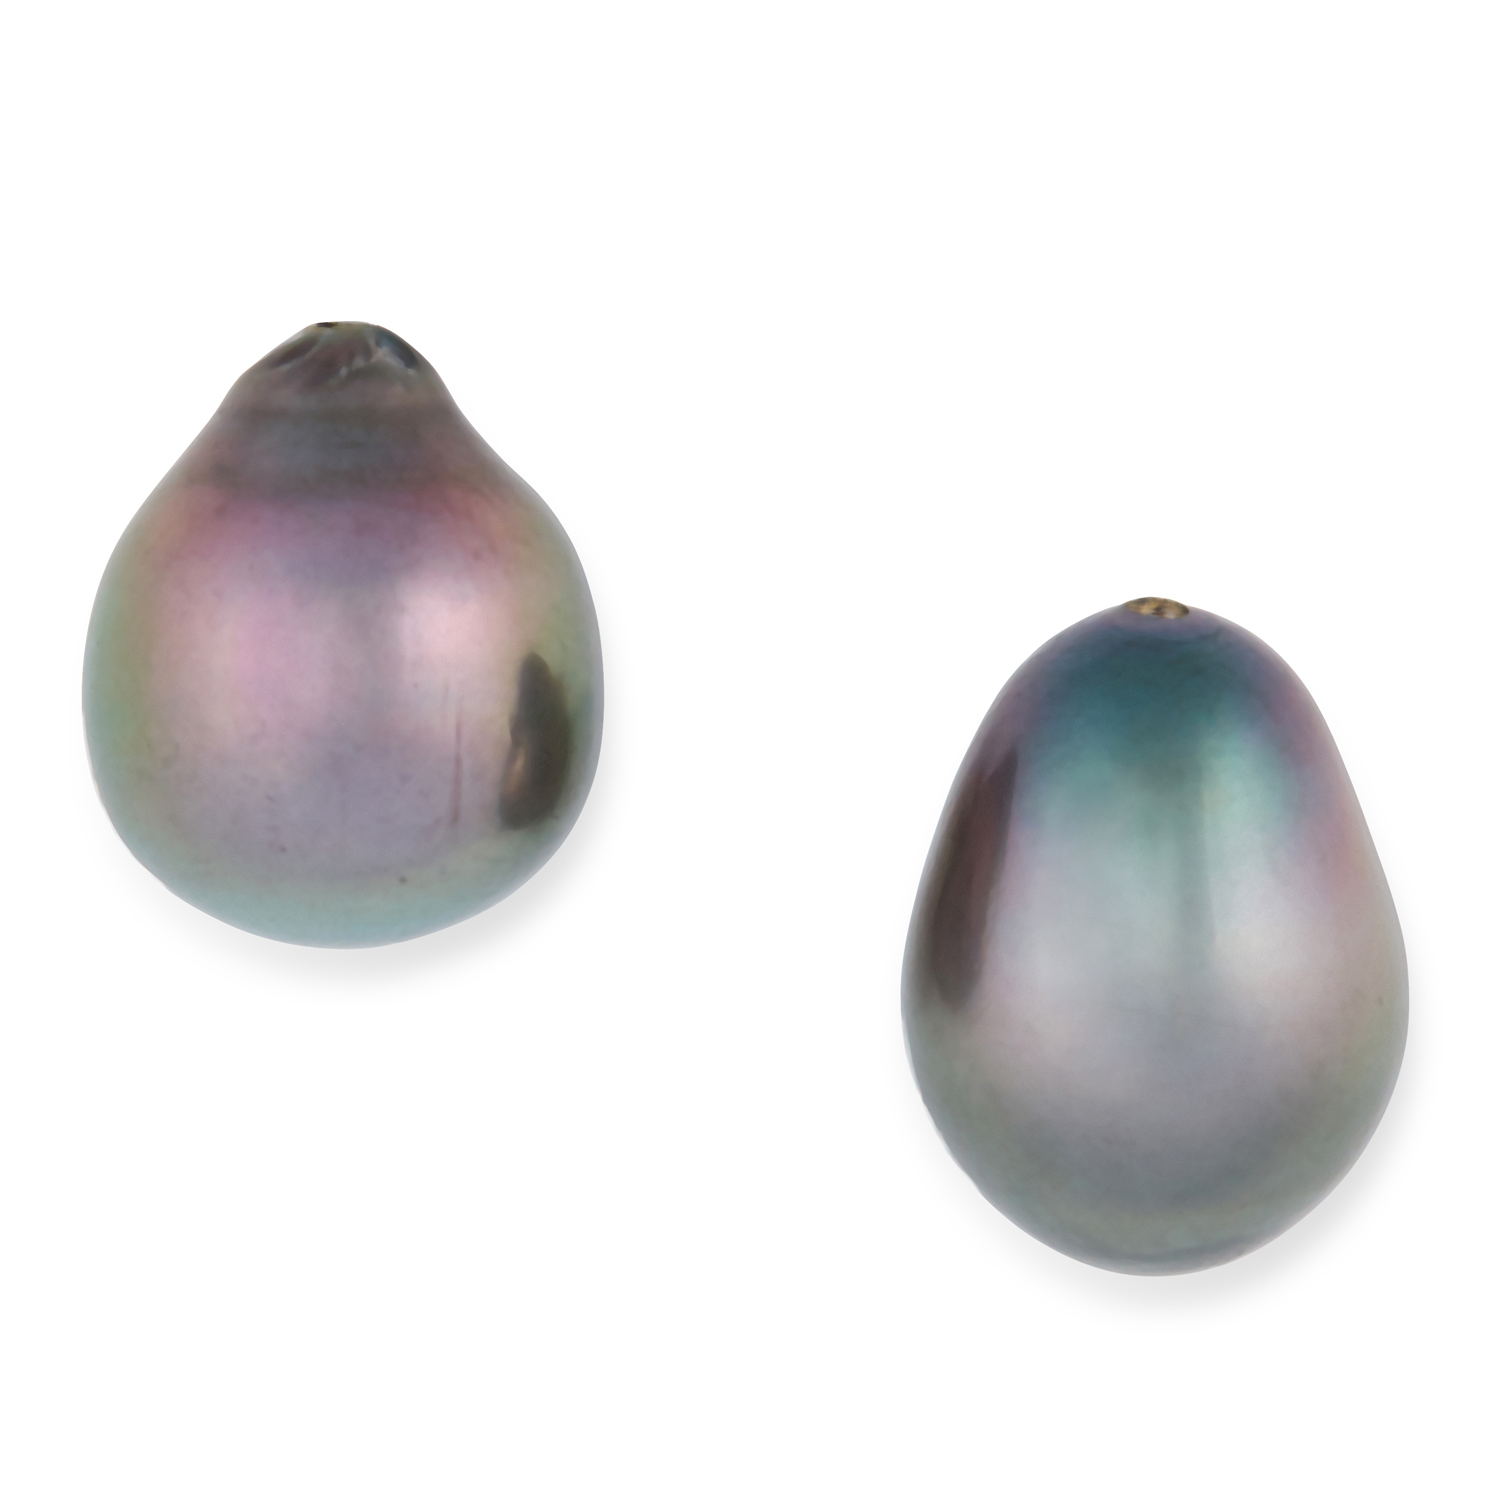 A PAIR OF GREY / BLACK PEARLS of 14.5 and 15.8mm, unmounted, half drilled, 6.1g.